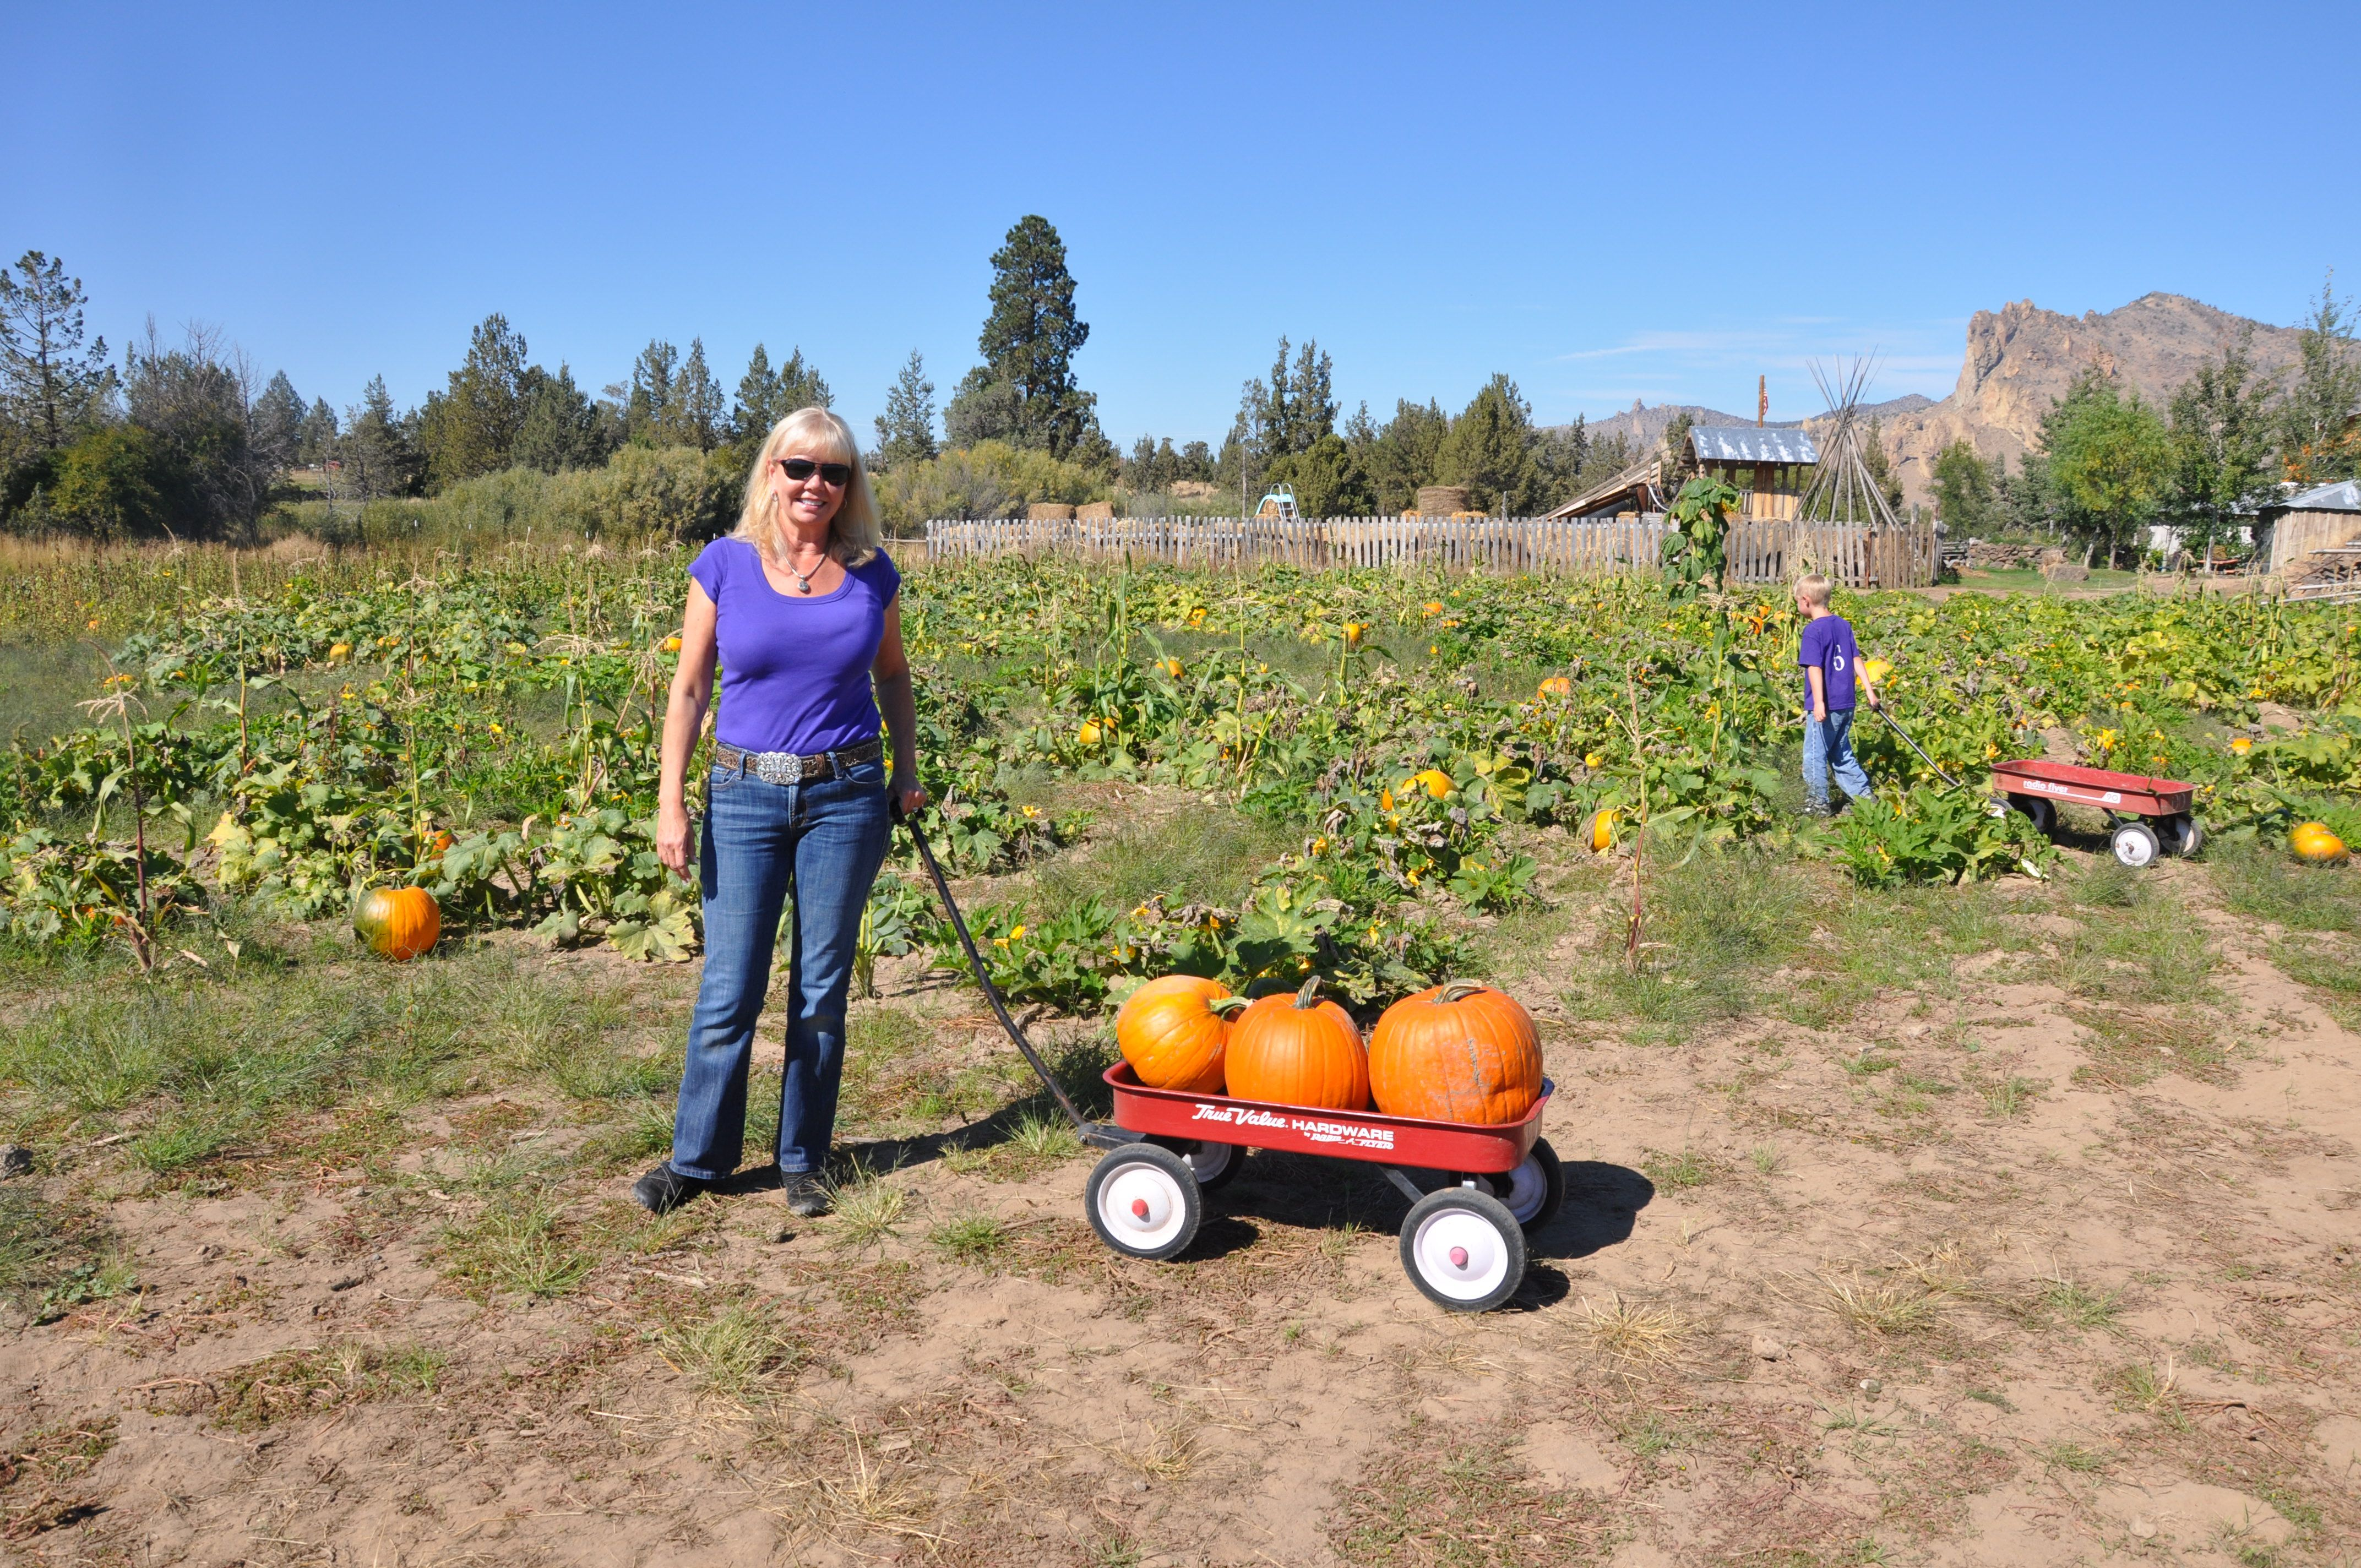 Chef Bette In The Pumpkin Patch At D.D. Ranch